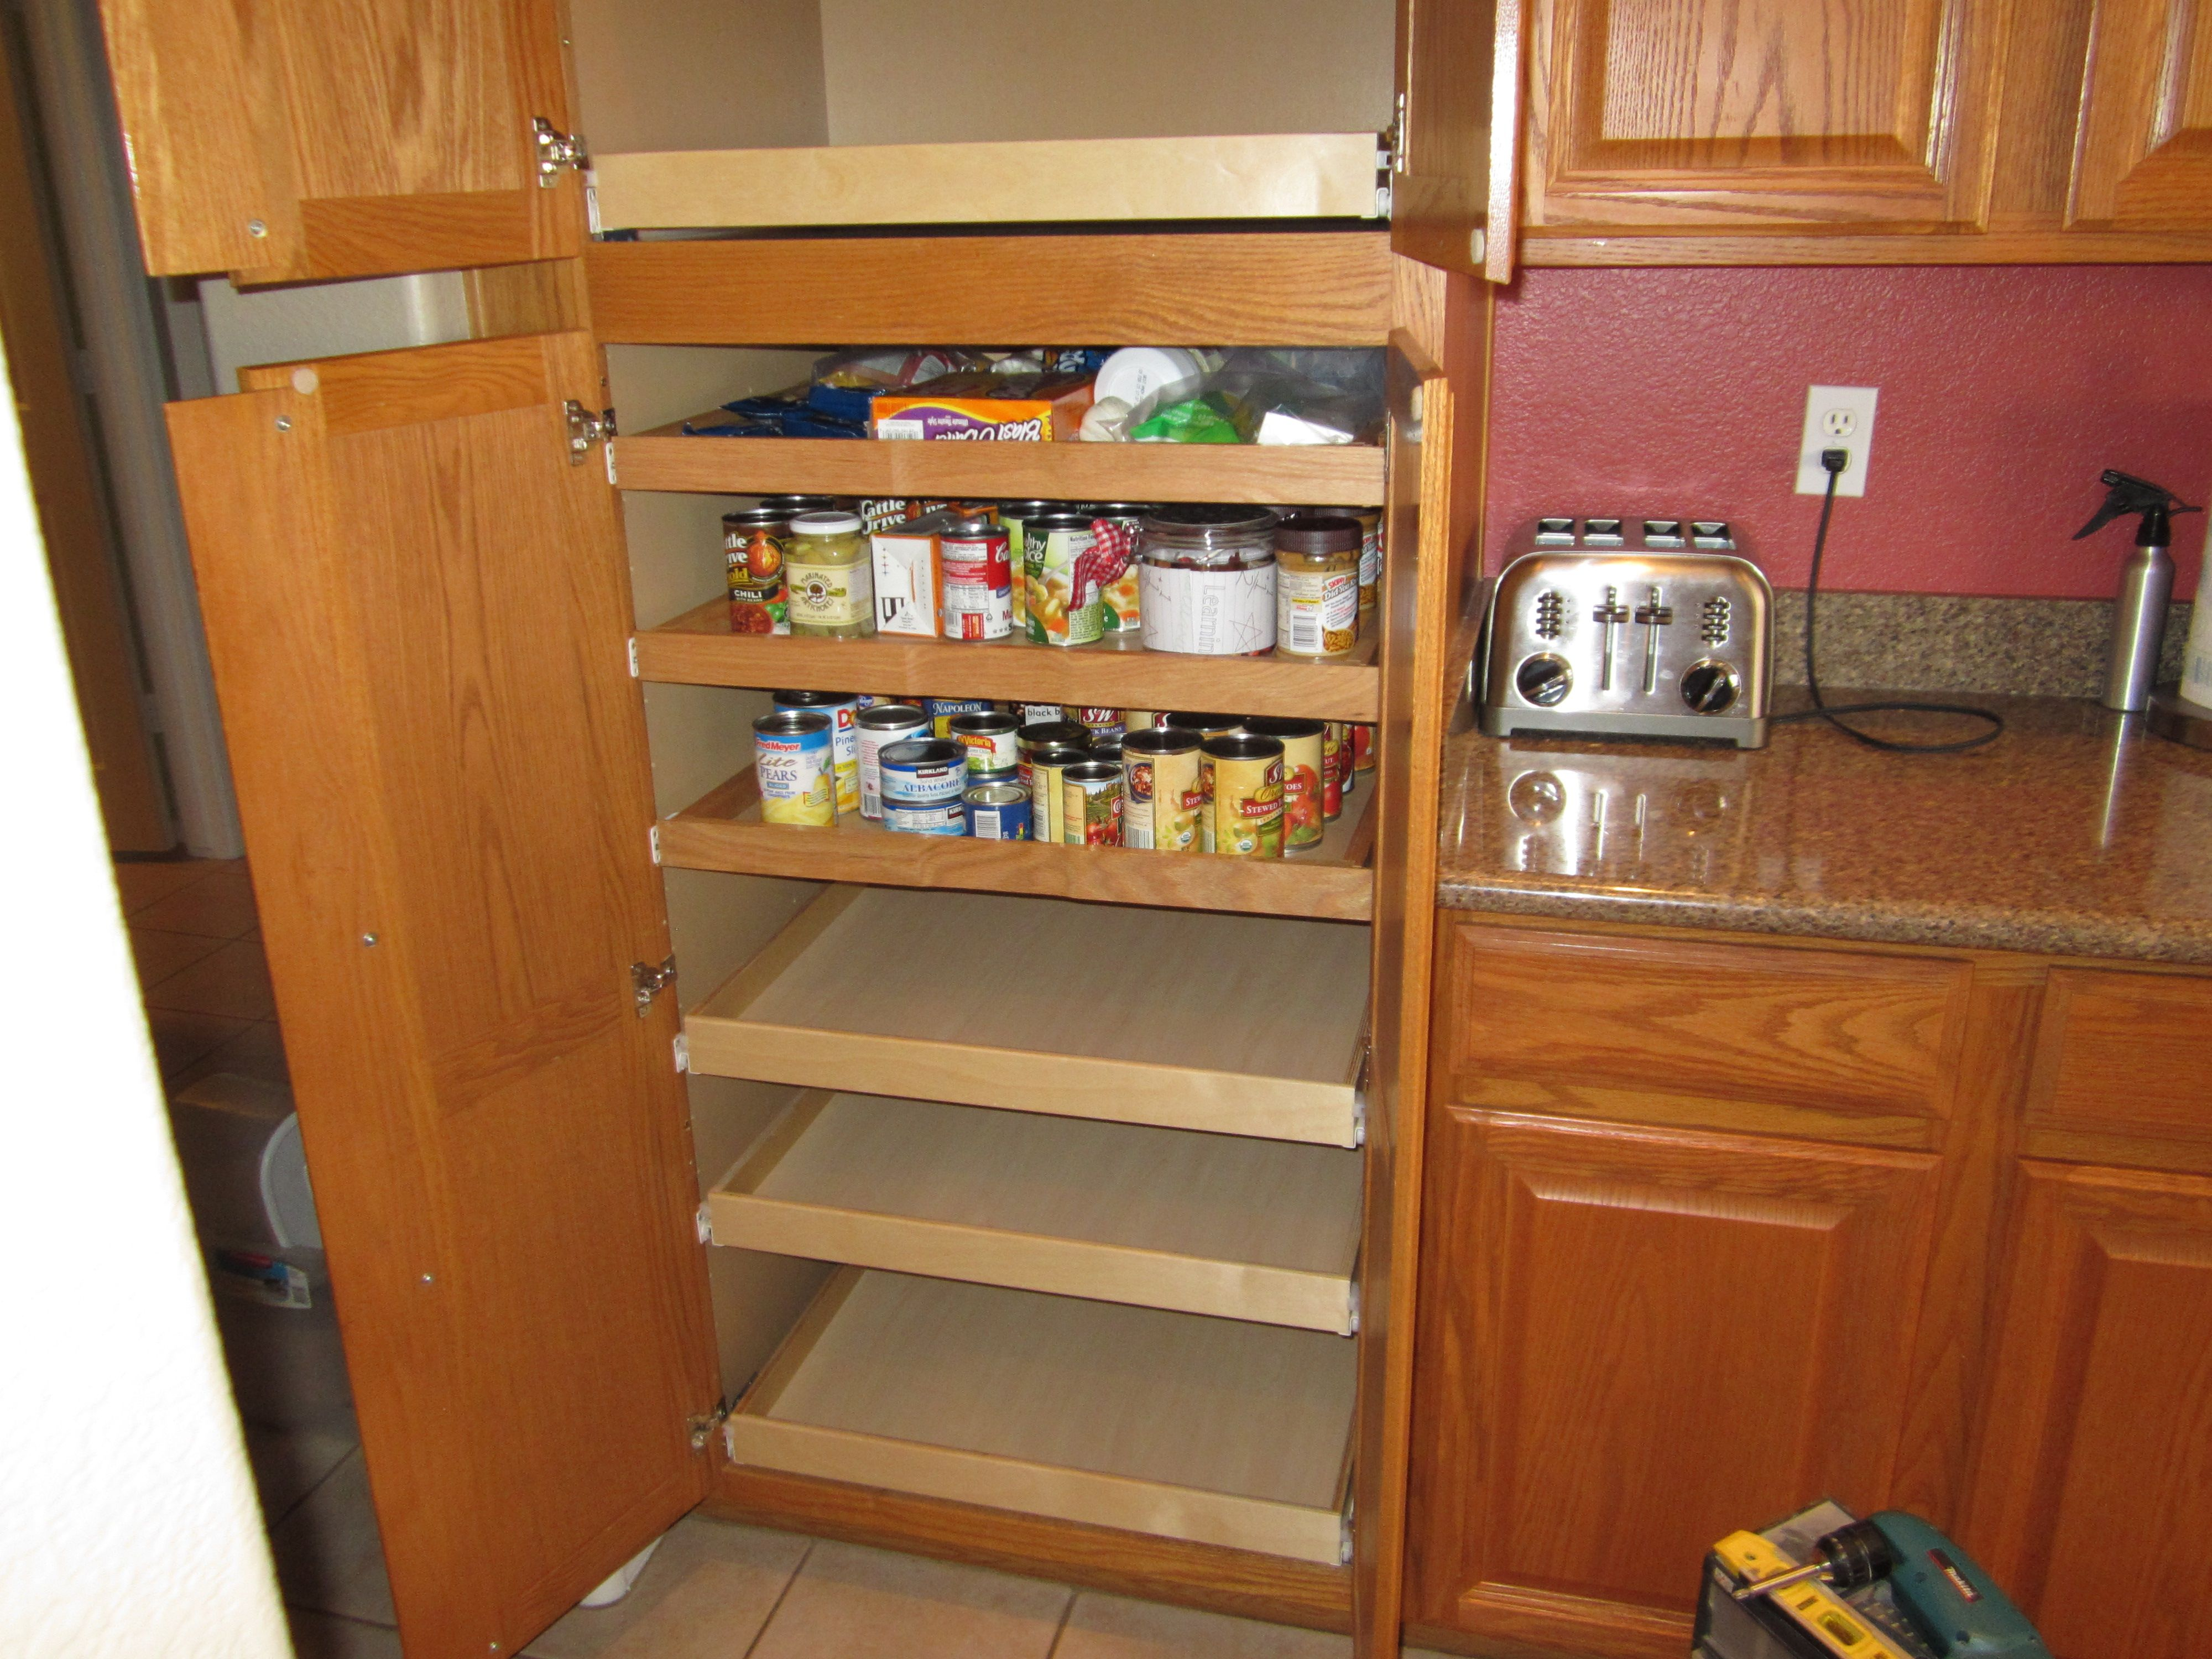 Double Door Pantry Cabinet With Pull Out Shelves Added